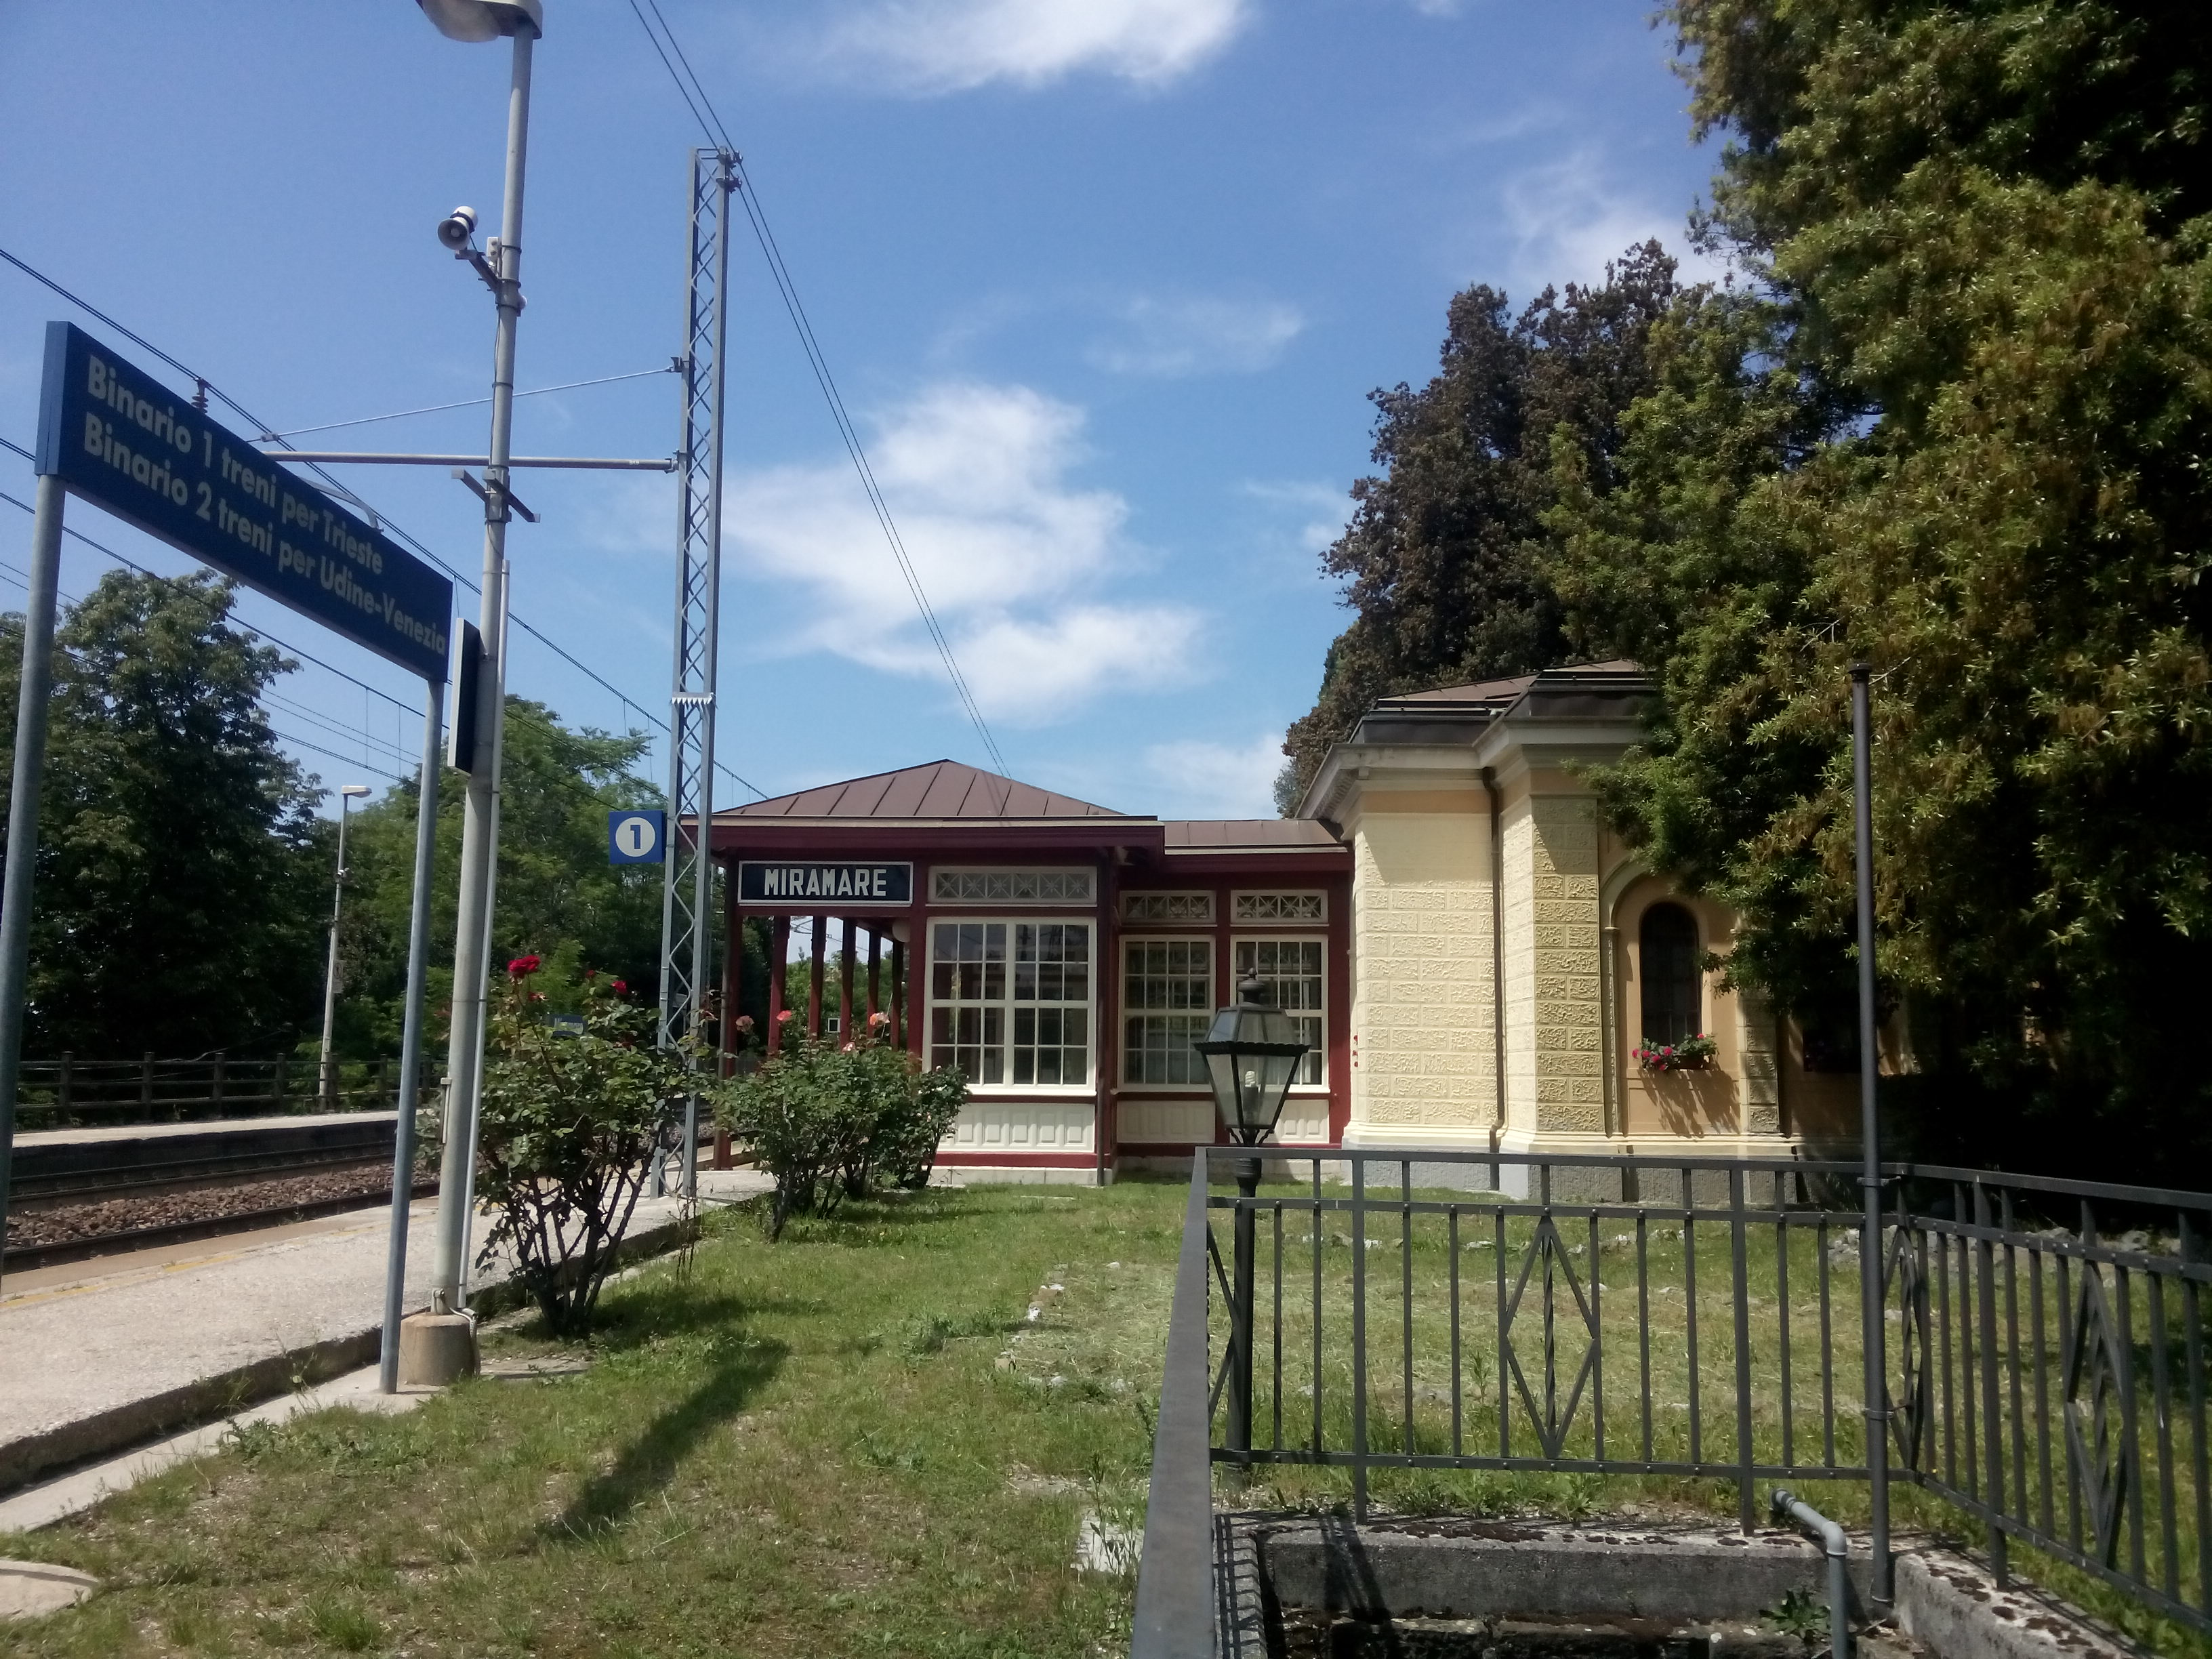 A train station with the sign Miramare